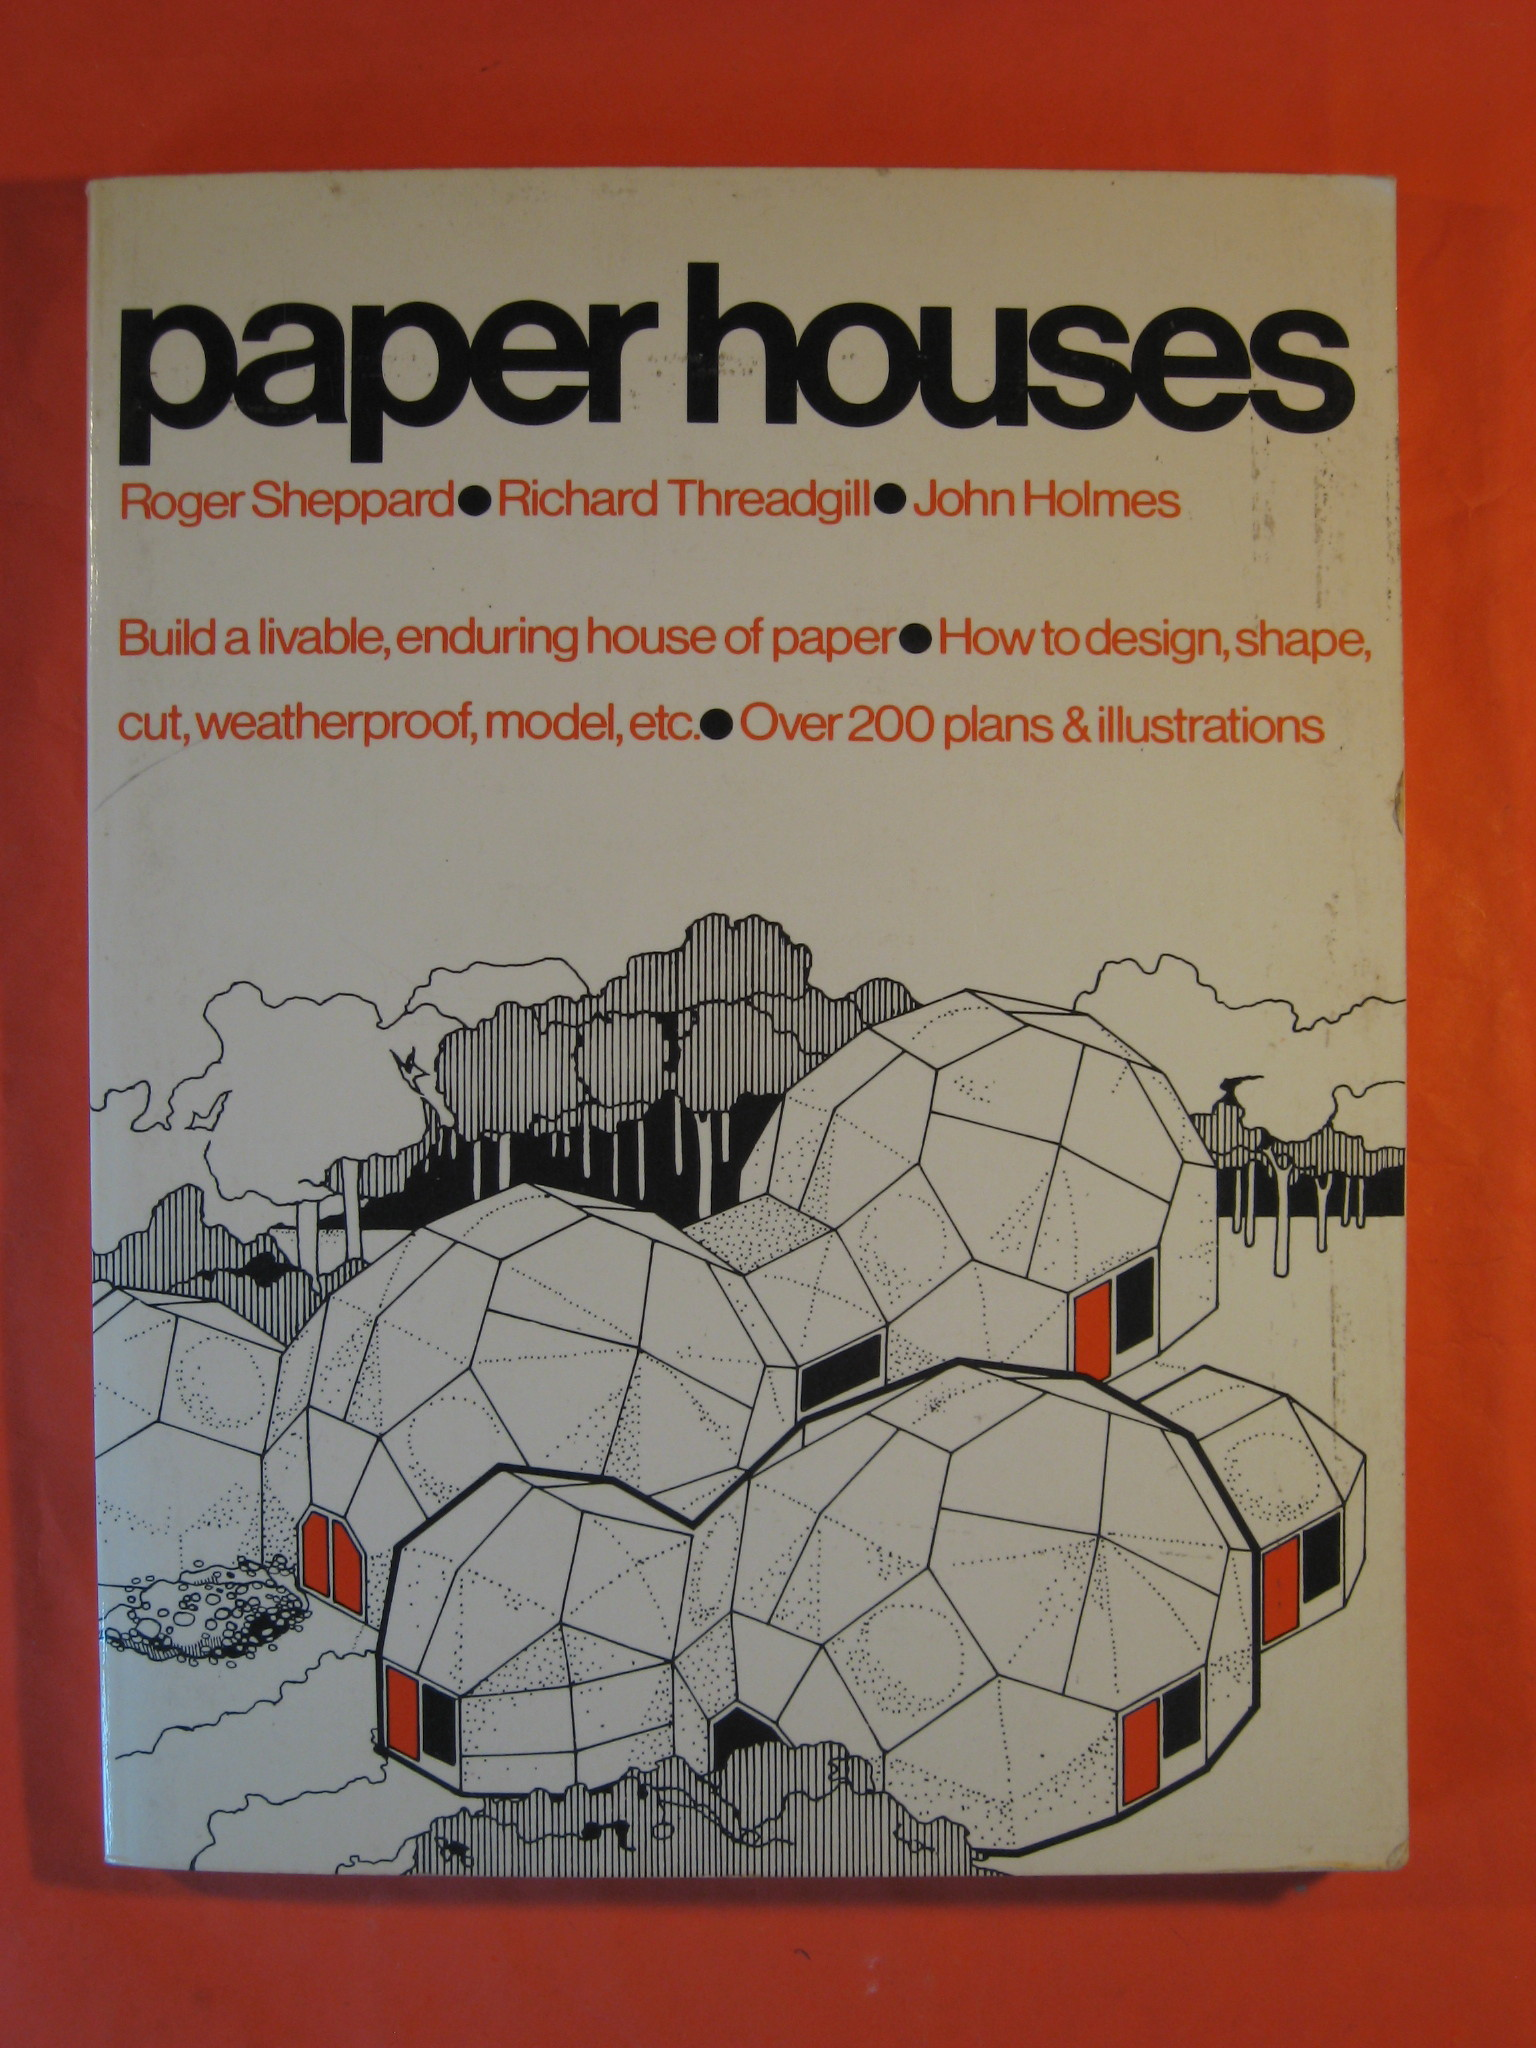 Paper Houses: Build a Livable, Enduring House of Paper. How to Design, Shape, Cut, Weatherproof, Model, etc., Sheppard, Roger; Threadgill, Richard; Holmes, John